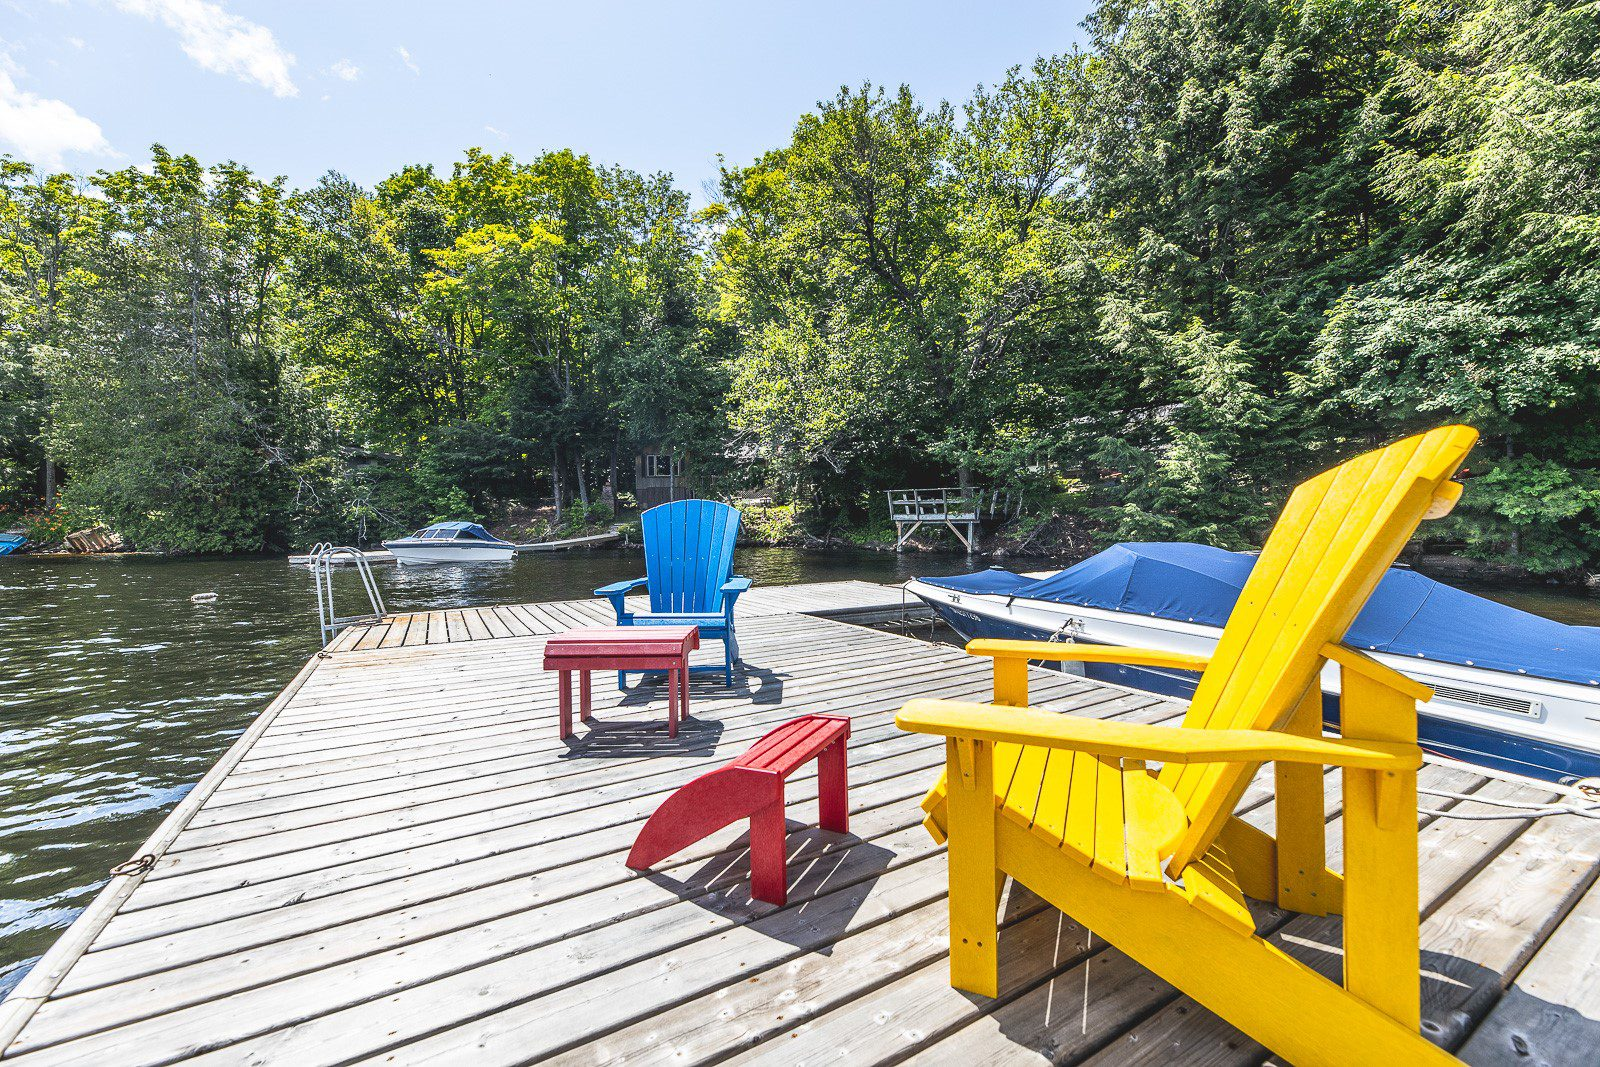 Yellow and Red muskoka chais sitting on the dock of 1023 Rolland Drive.